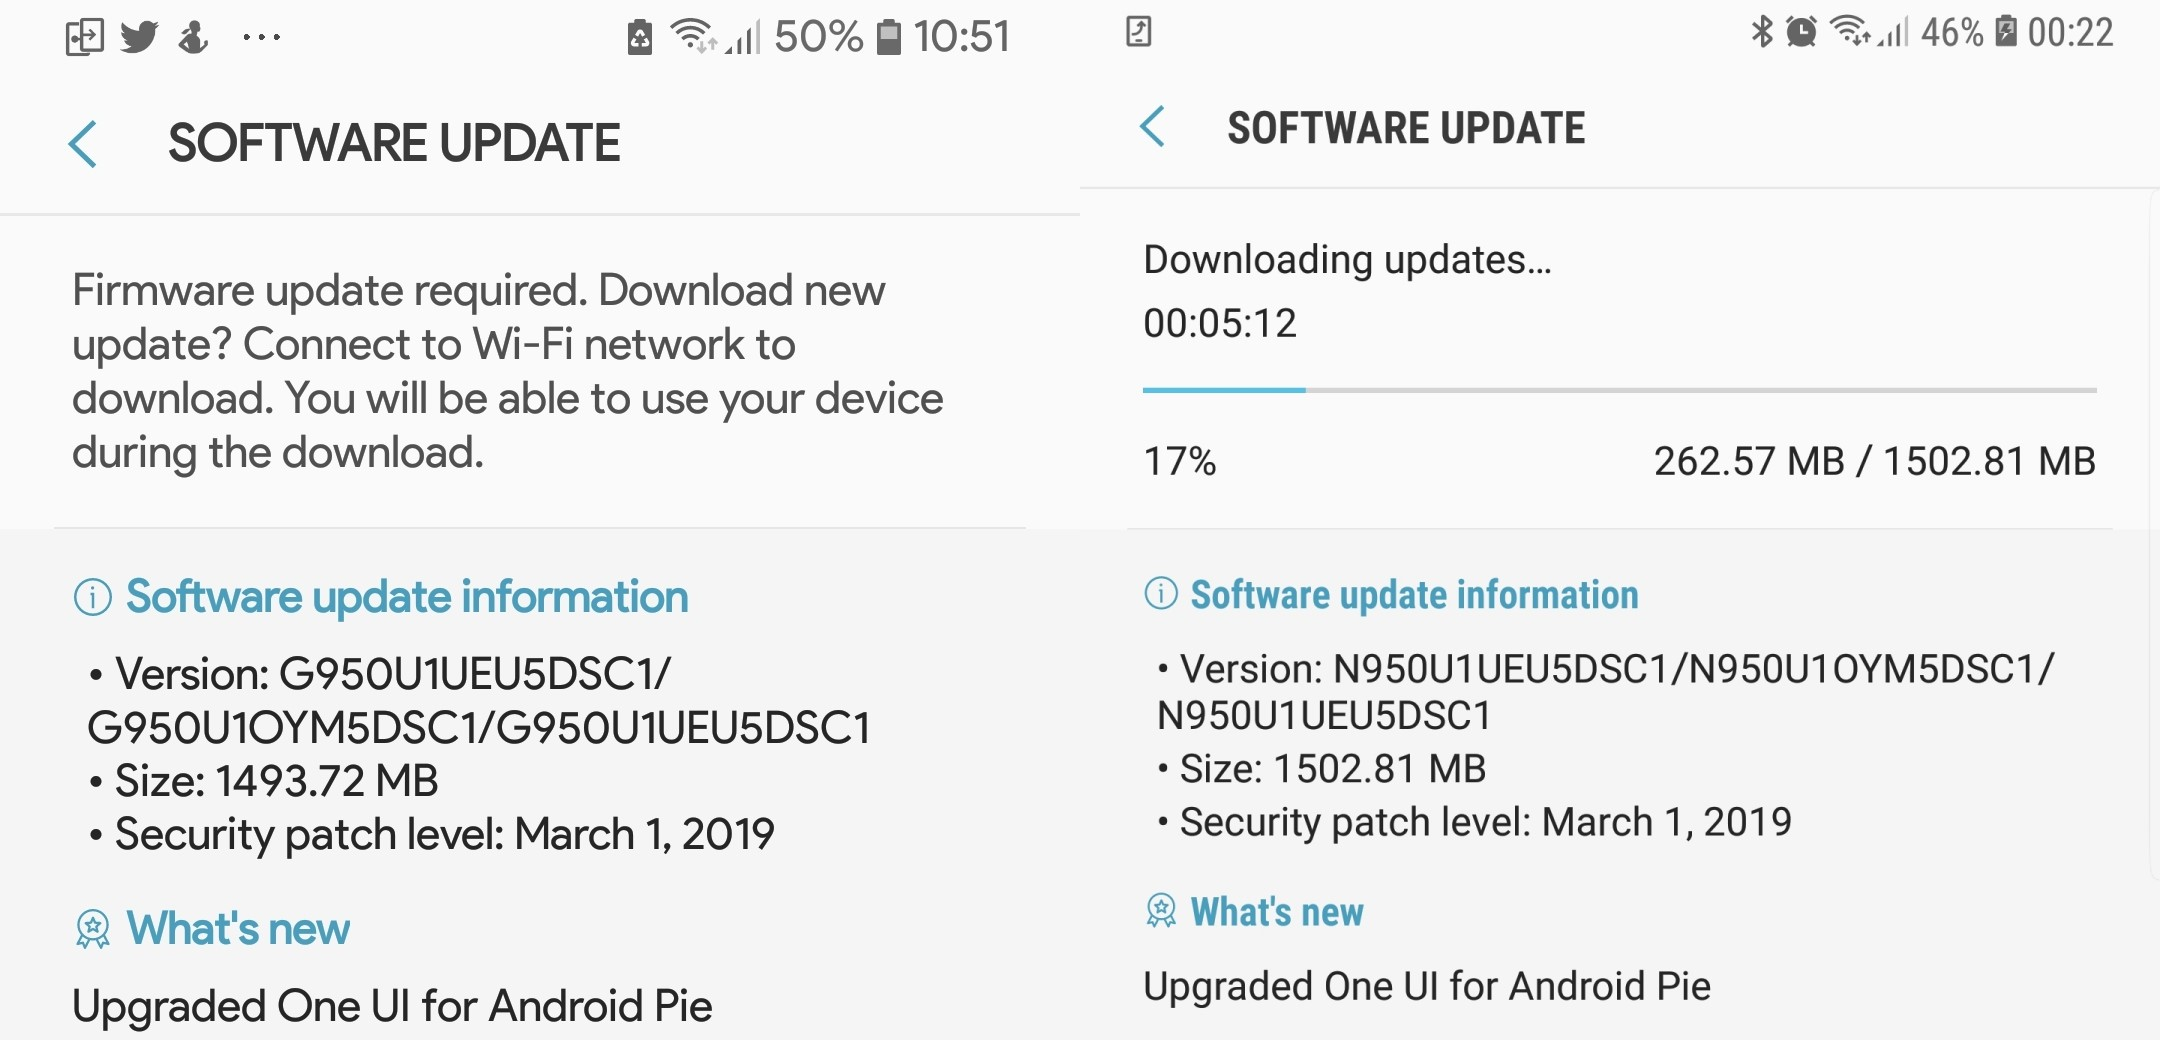 U.S. unlocked S8 and Note 8 Android Pie update